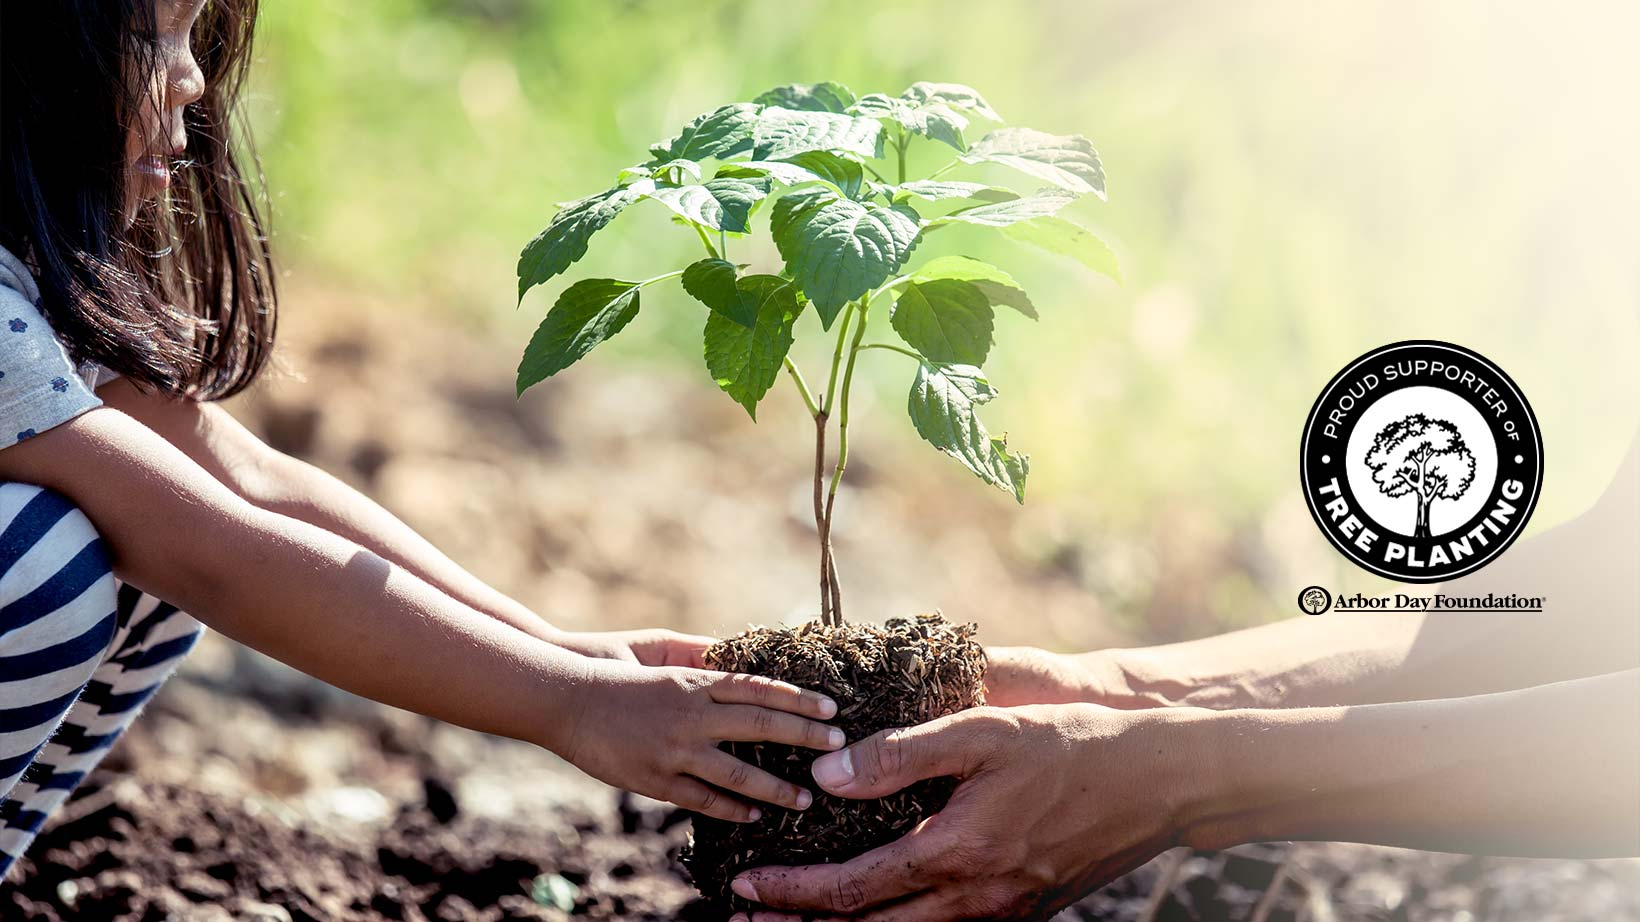 https://www.livelyroot.com/pages/arbor-day-partnership